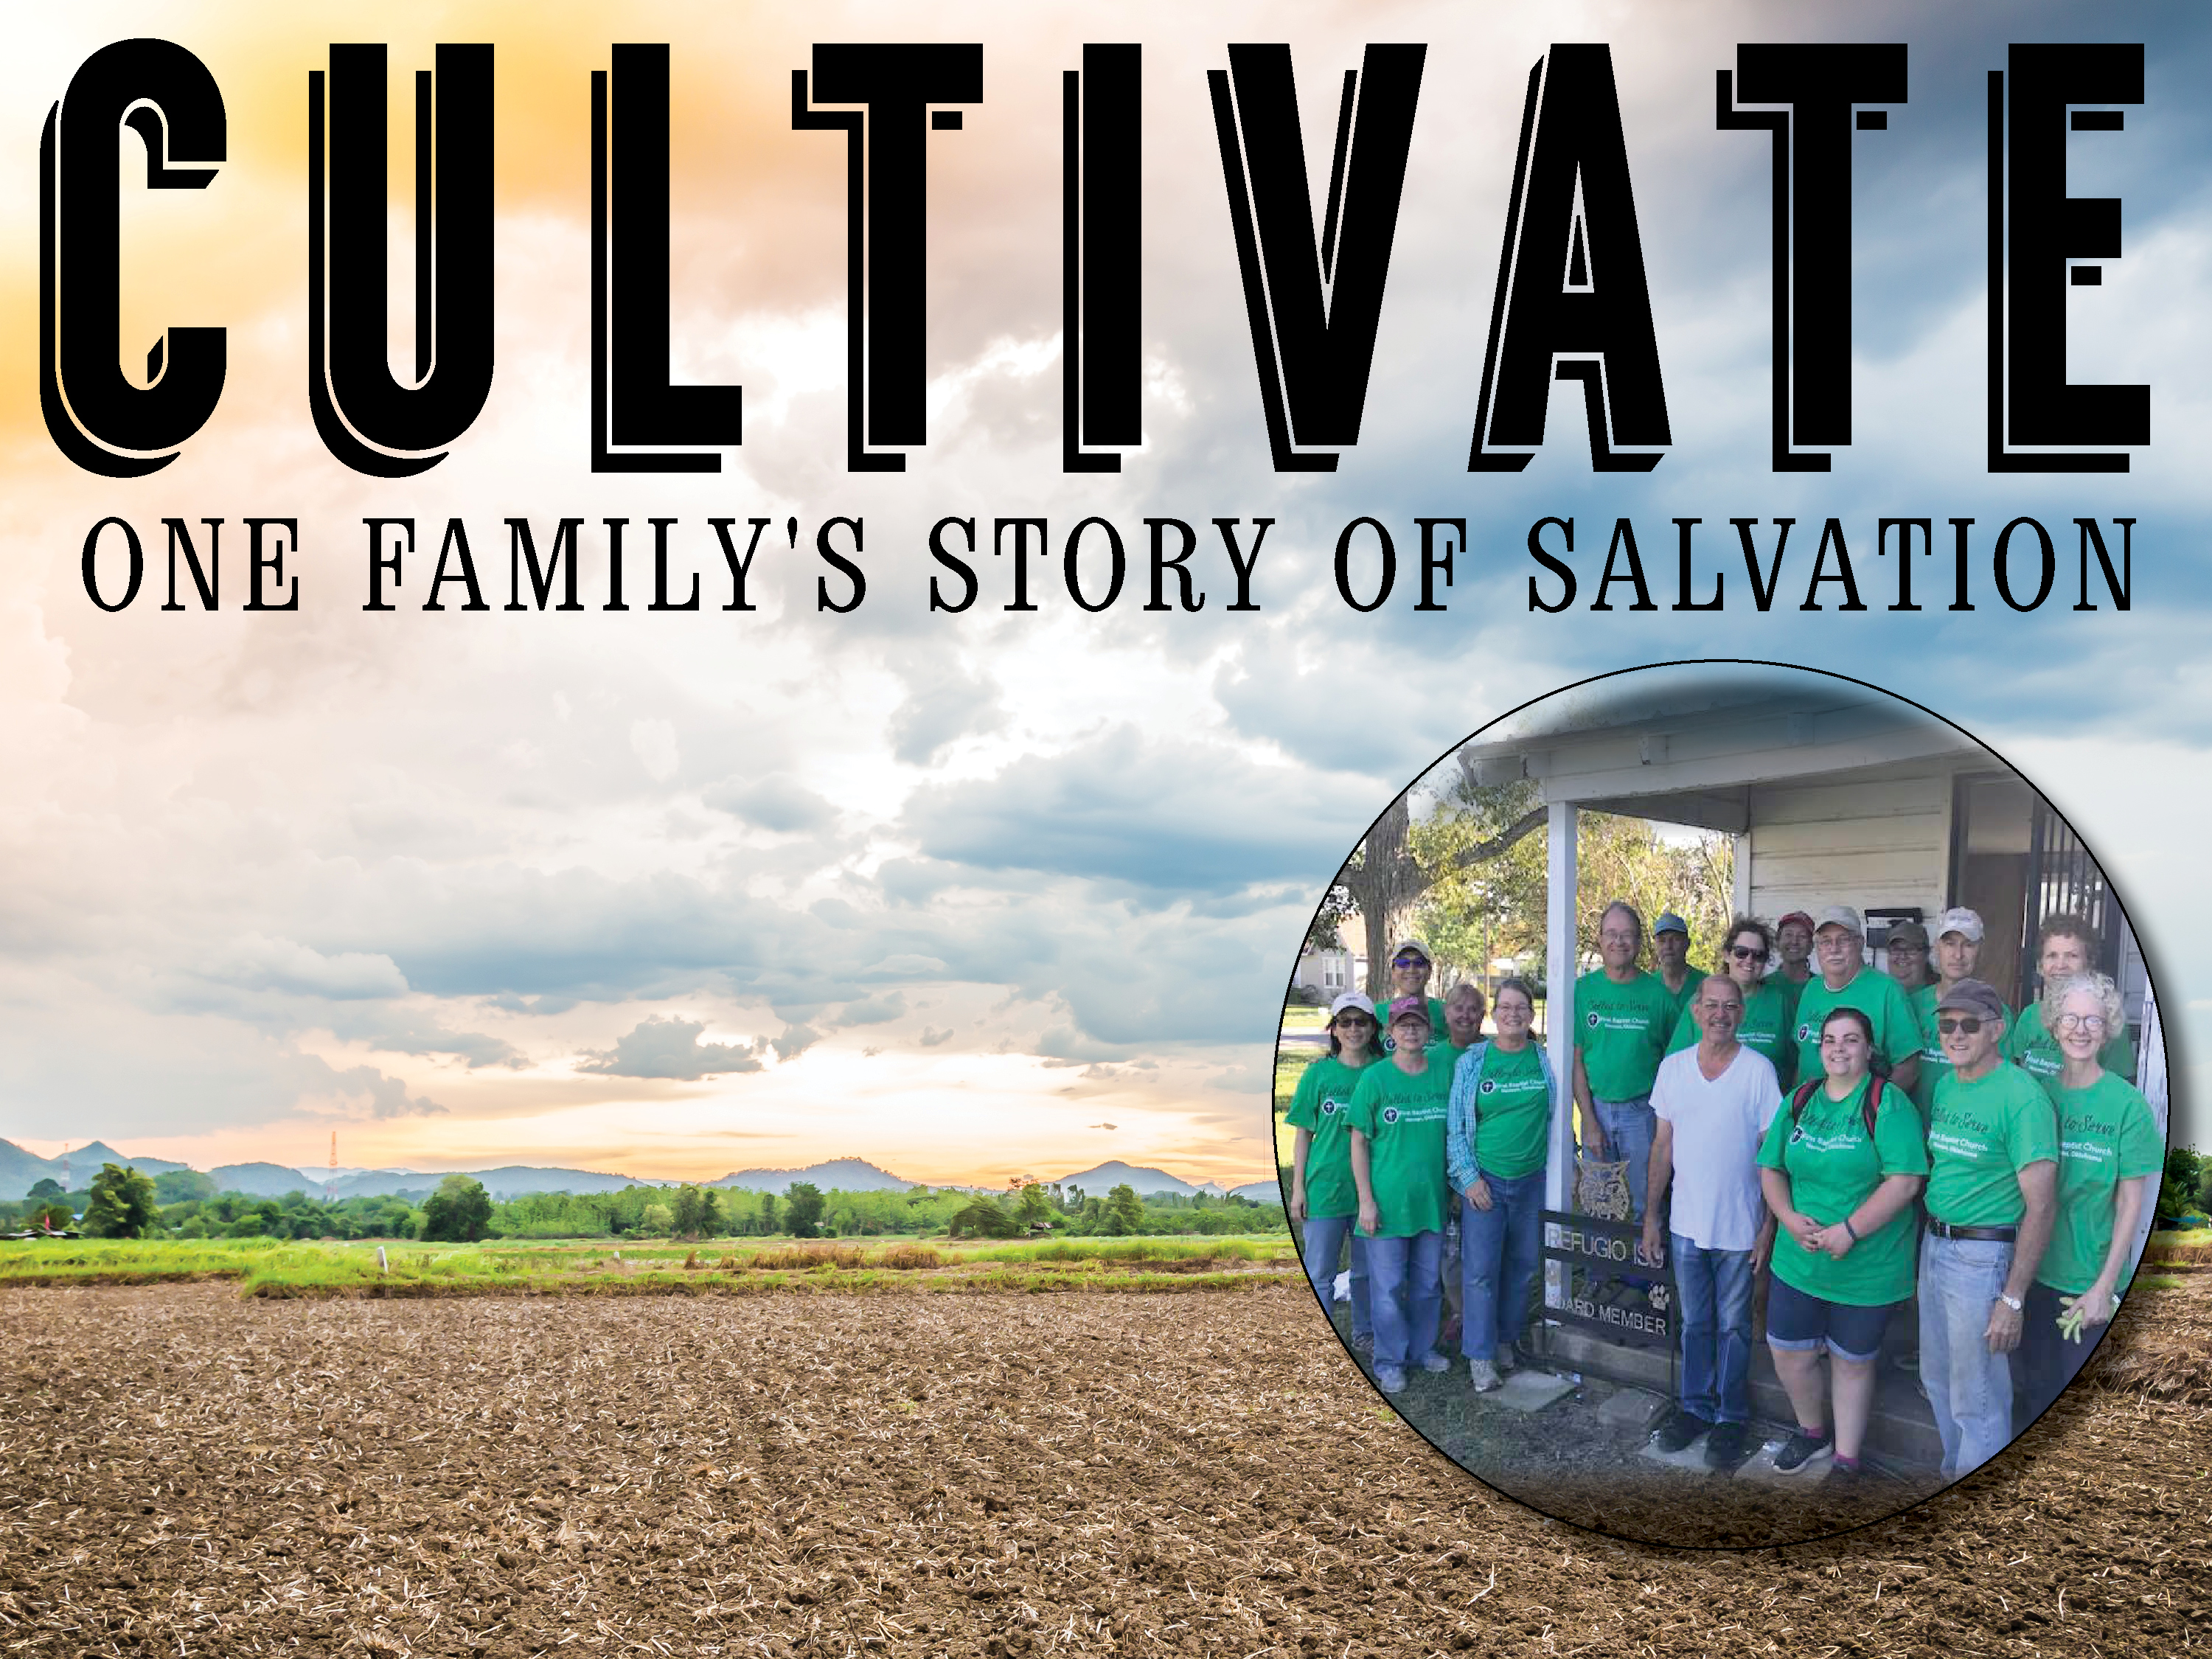 Cultivate: One Family's Story of Salvation